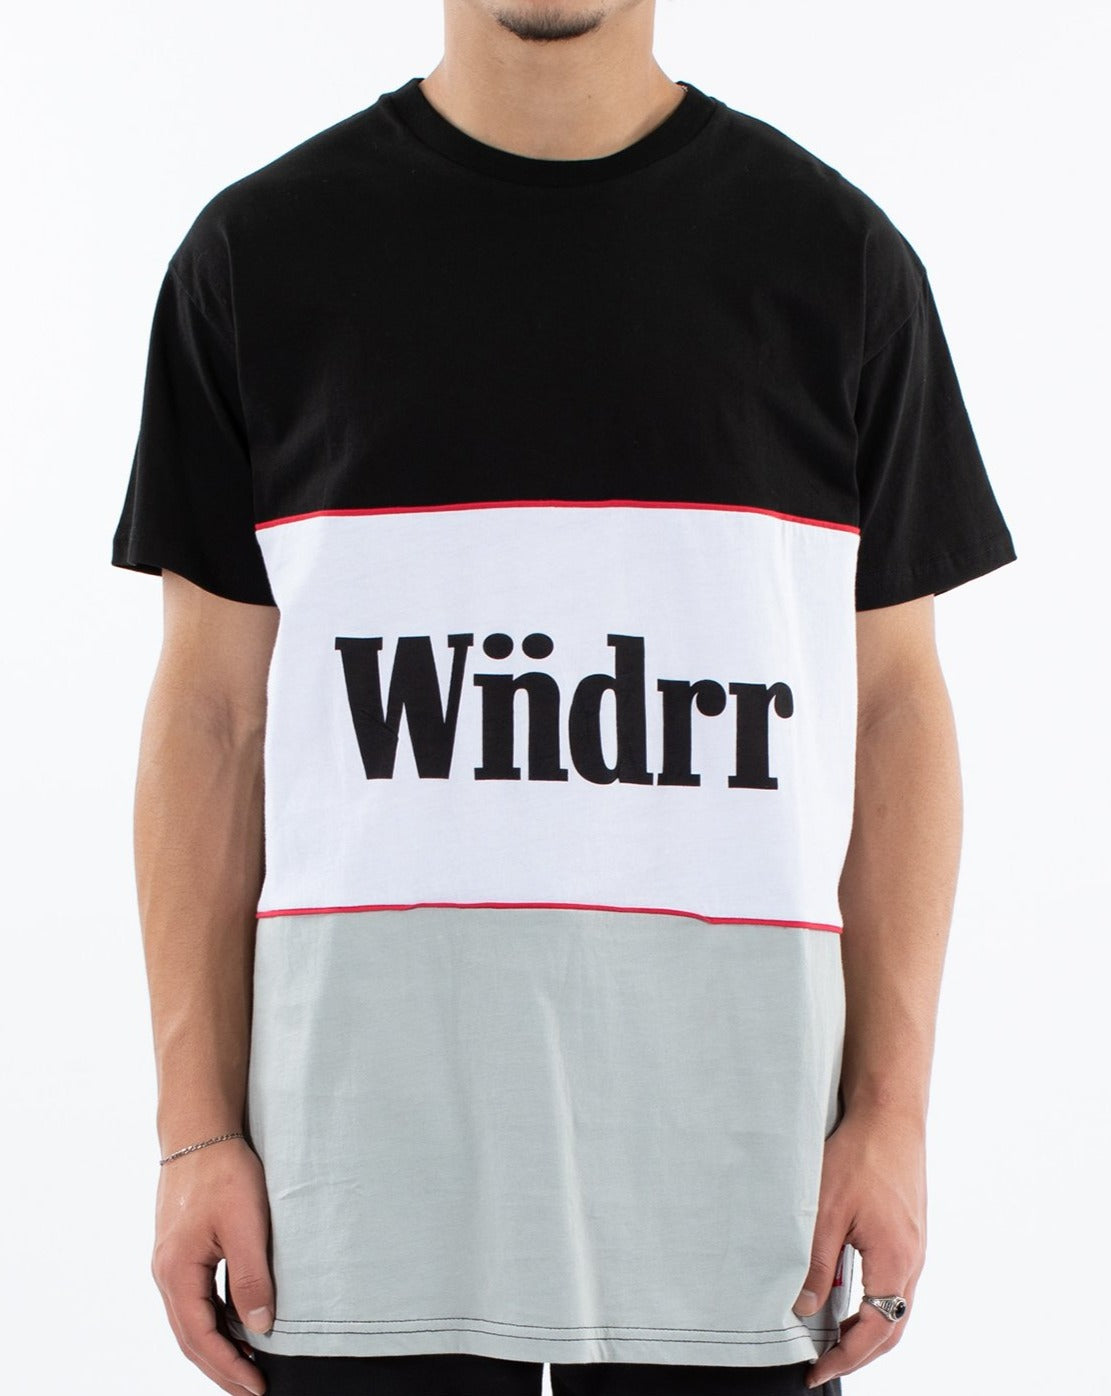 WNDRR Founders 3 Panel Custom Fit Tee